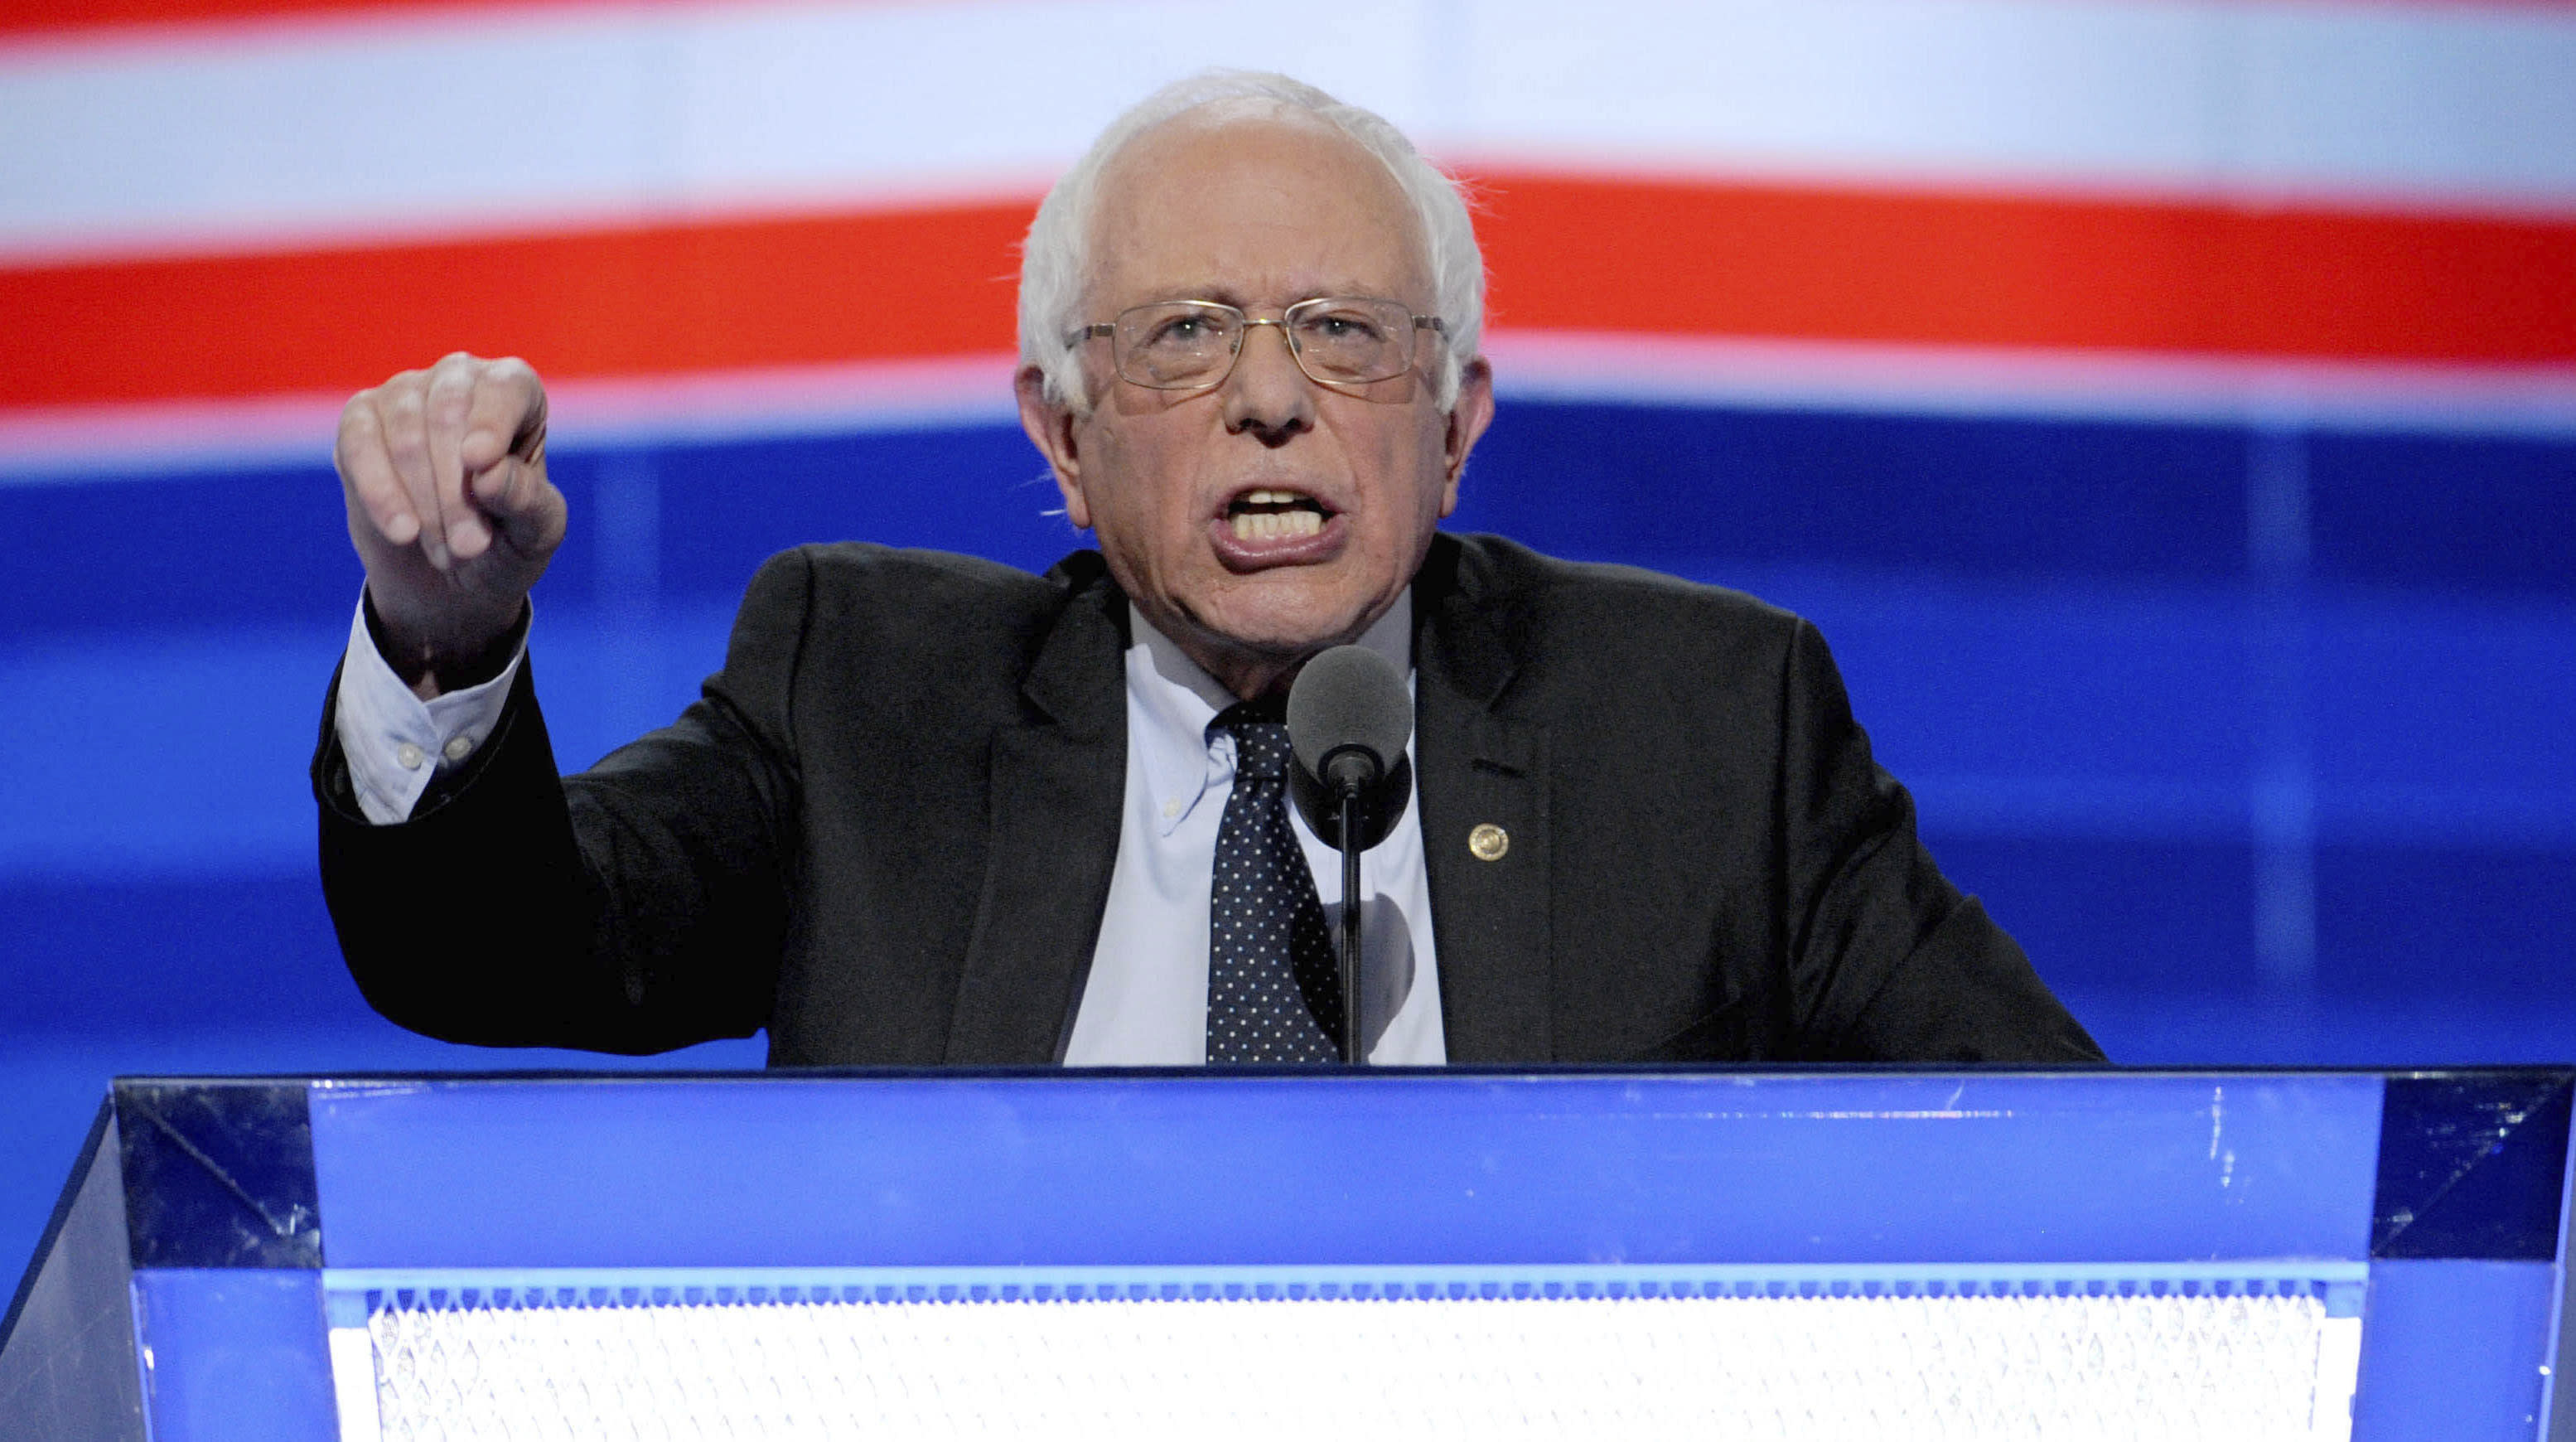 Scaramucci: Bernie could 'absolutely' beat Trump